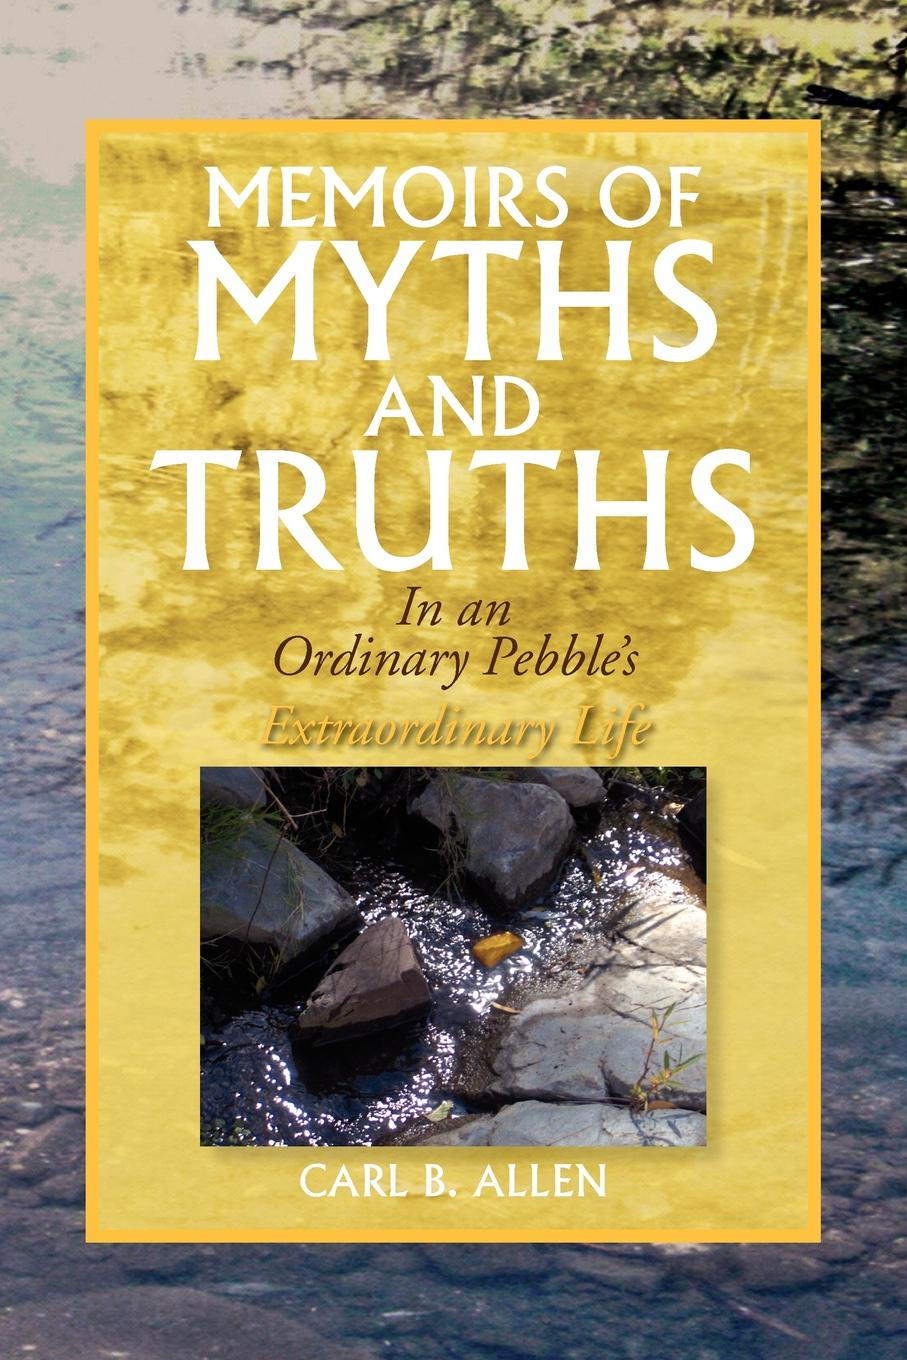 Carl B. Allen Memoirs of Myths and Truths brandie freely truths and freedom